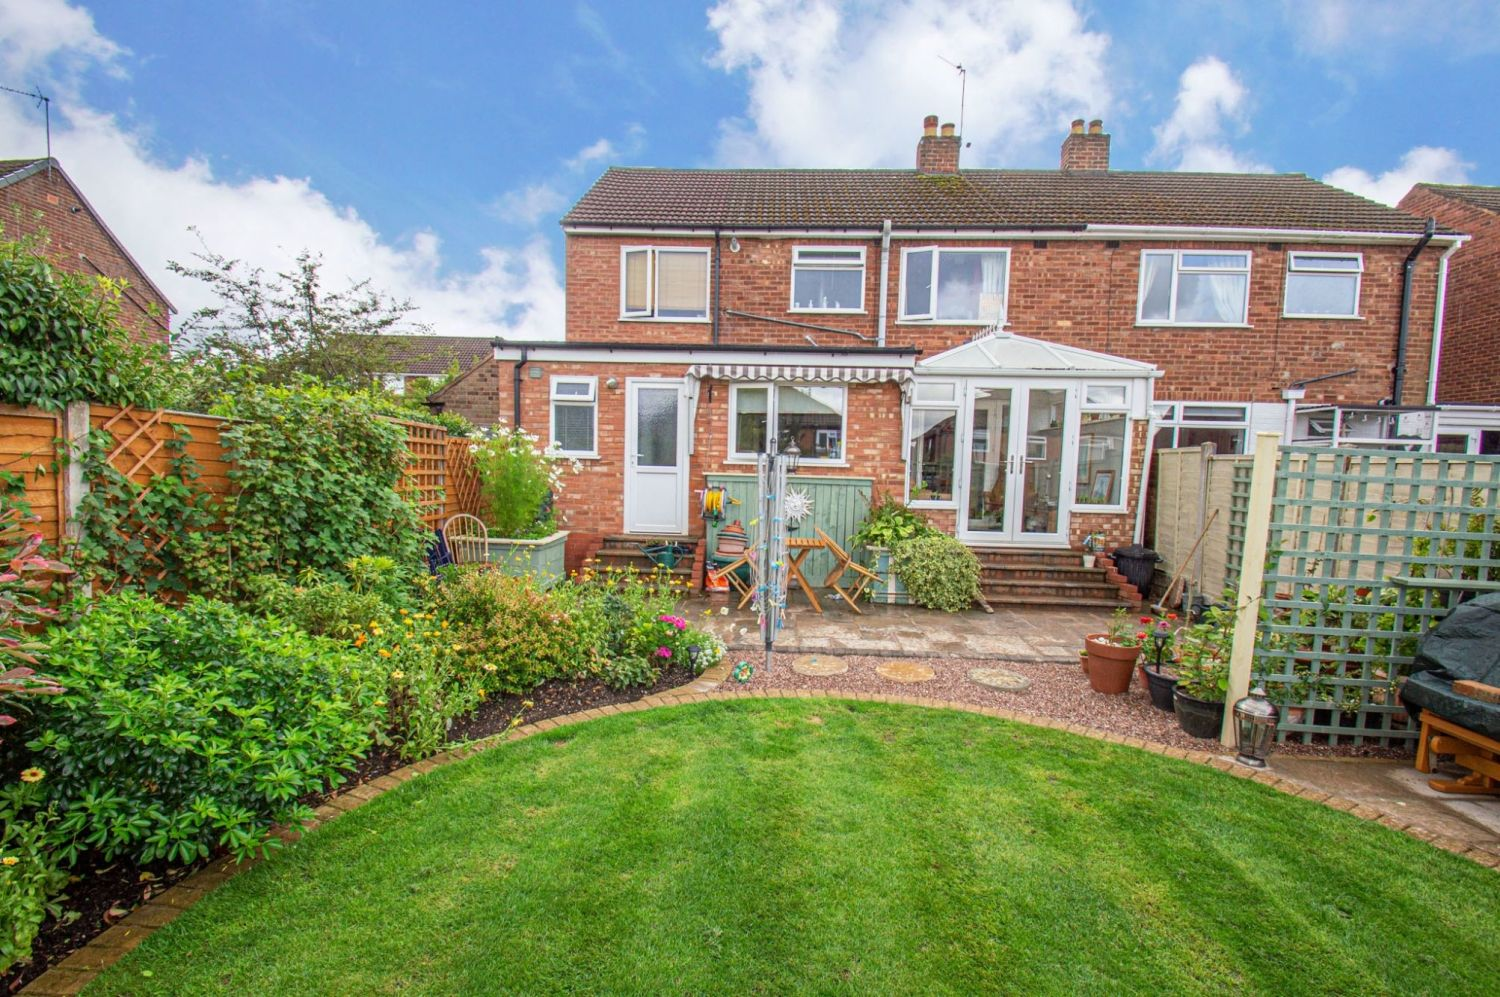 4 bed semi-detached for sale in Wheatcroft Close, Halesowen 20